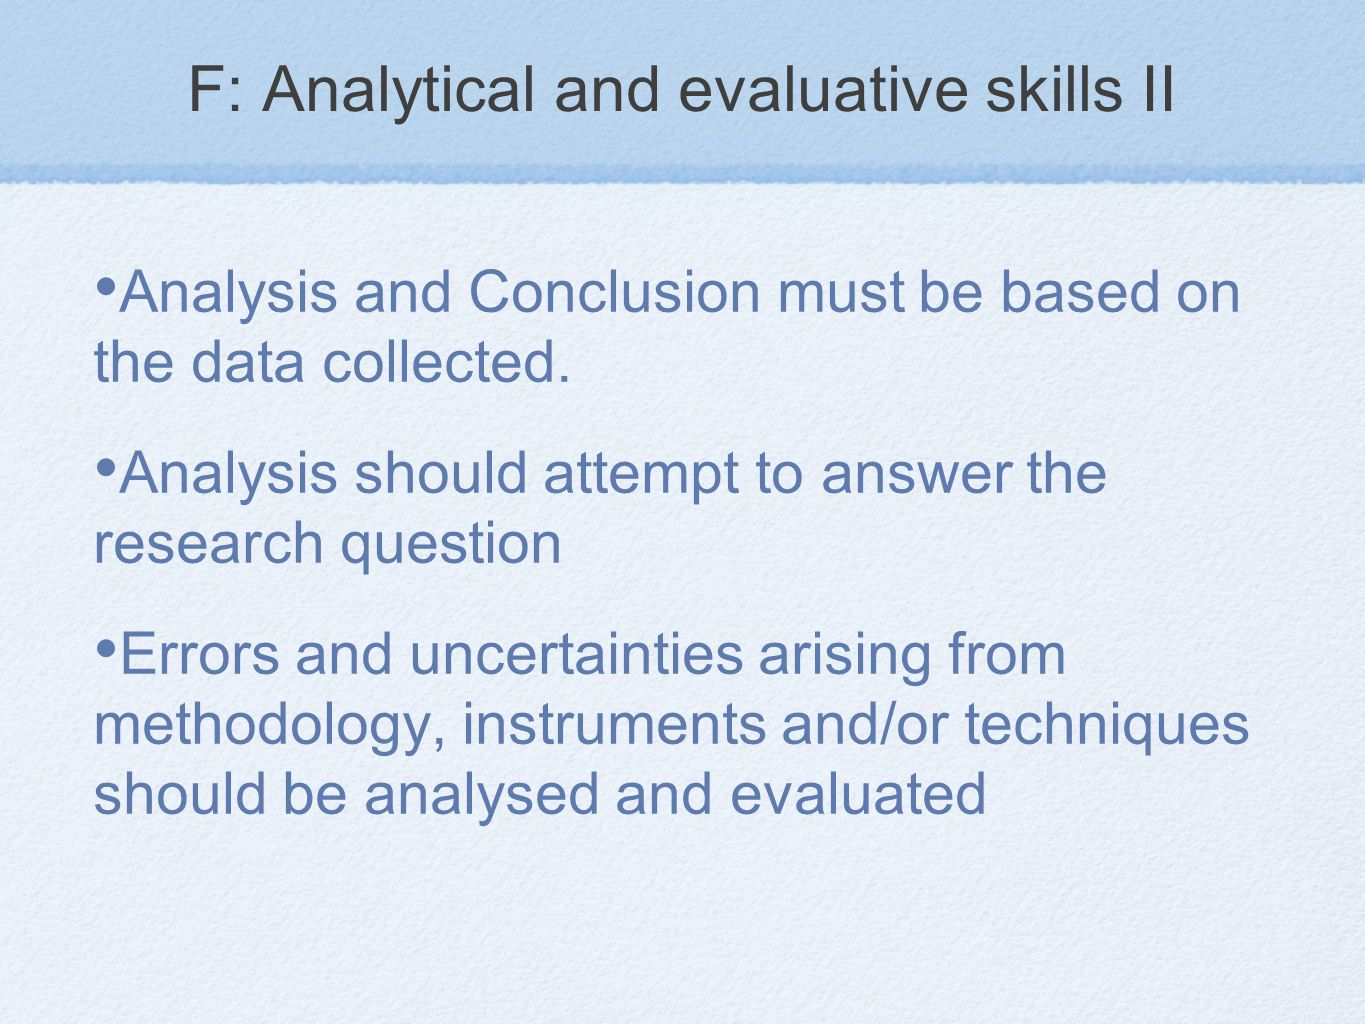 F: Analytical and evaluative skills II Analysis and Conclusion must be based on the data collected.